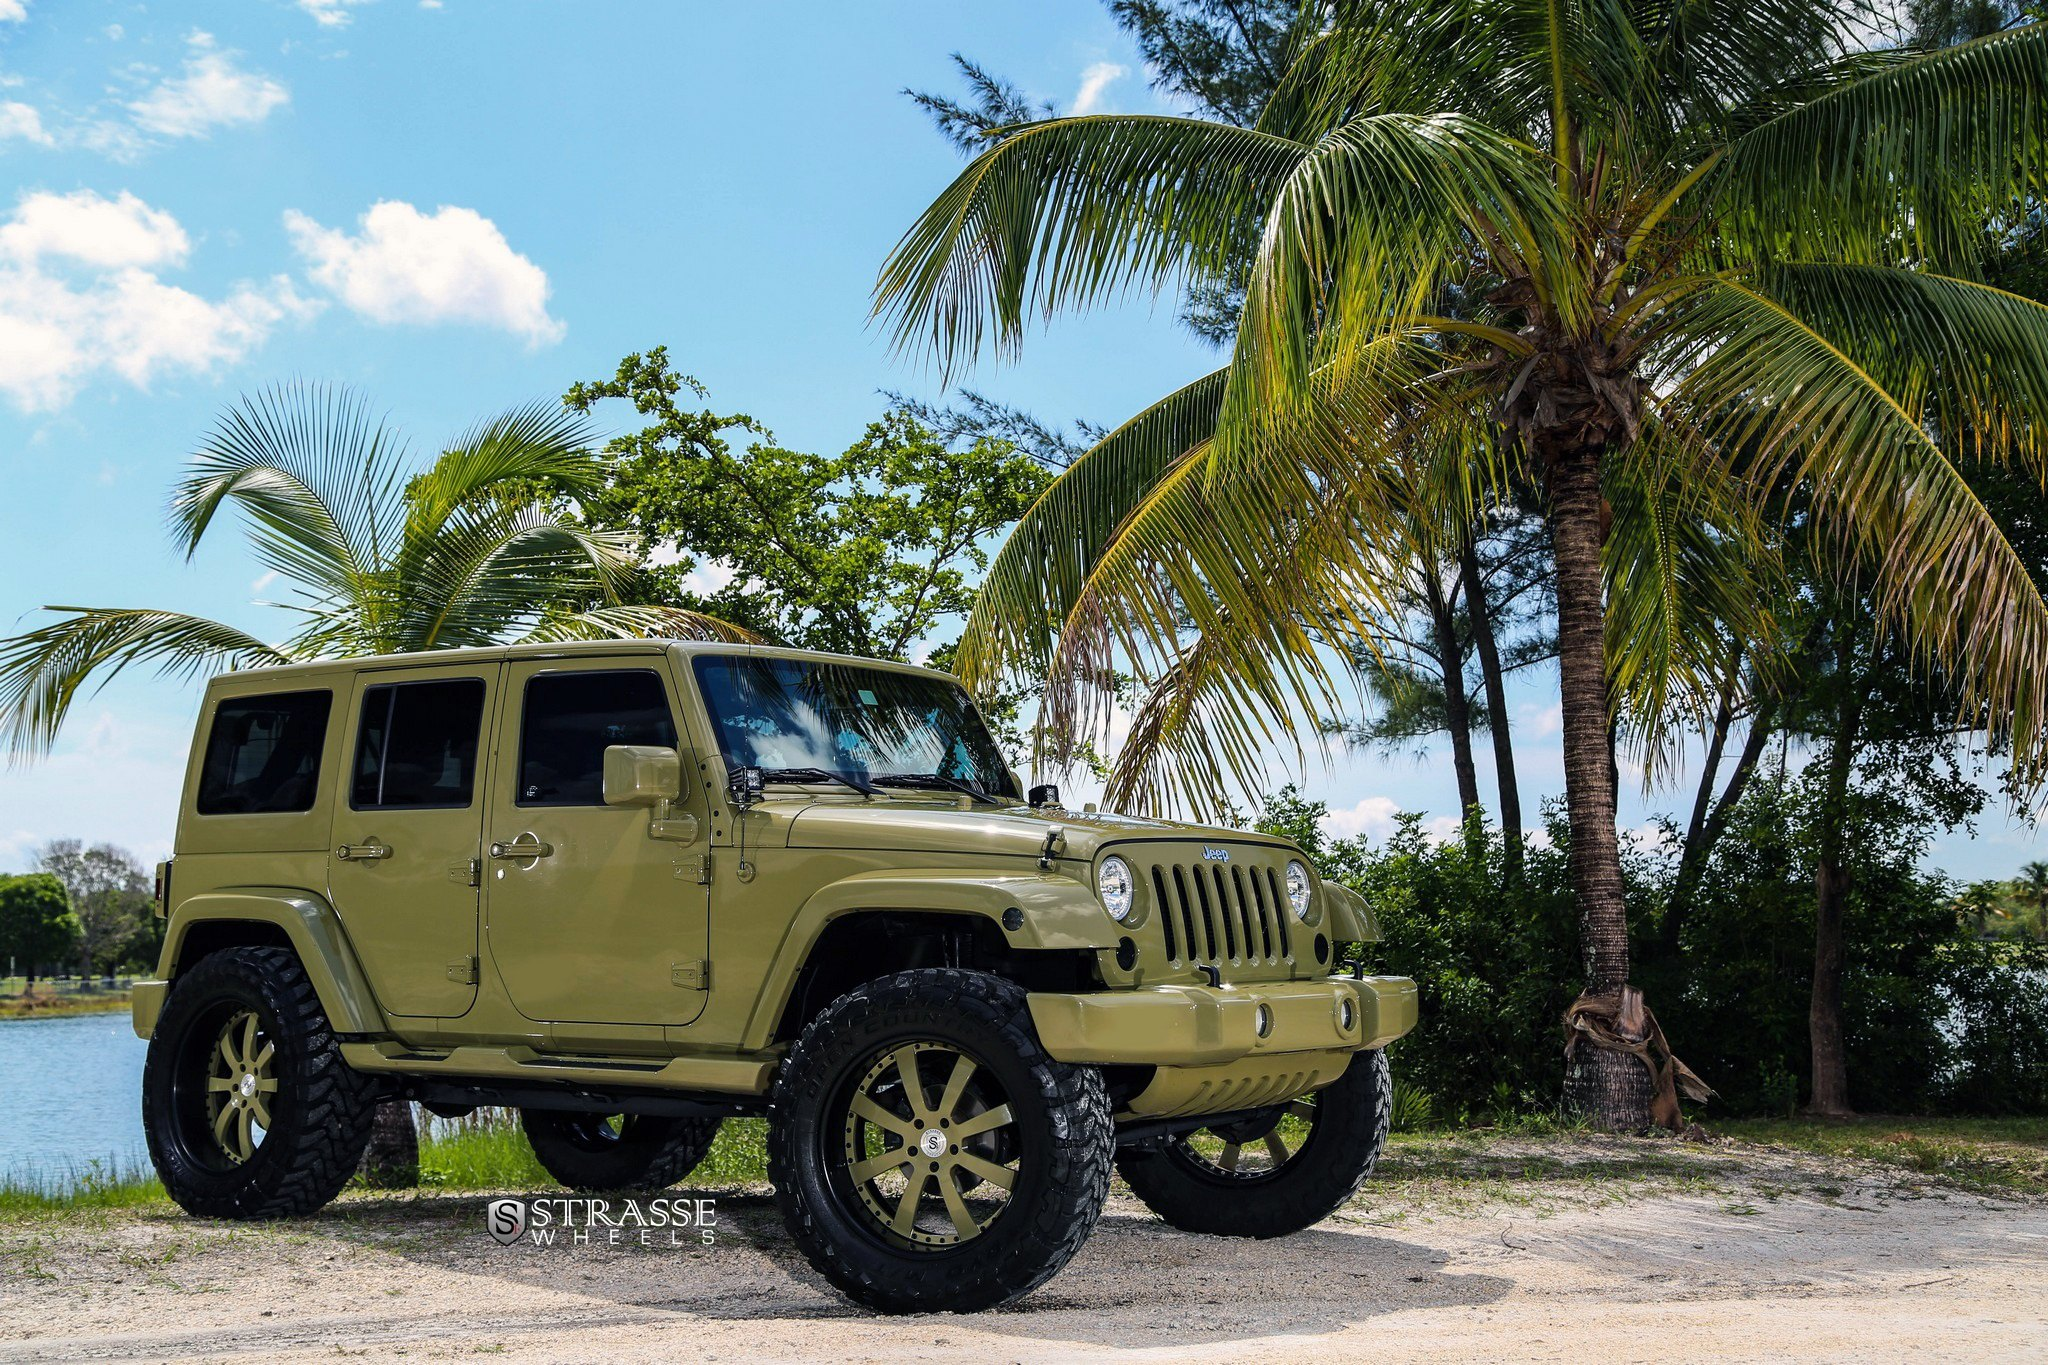 Khaki Jeep Wrangler with Aftermarket Front Bumper - Photo by Strasse Forged